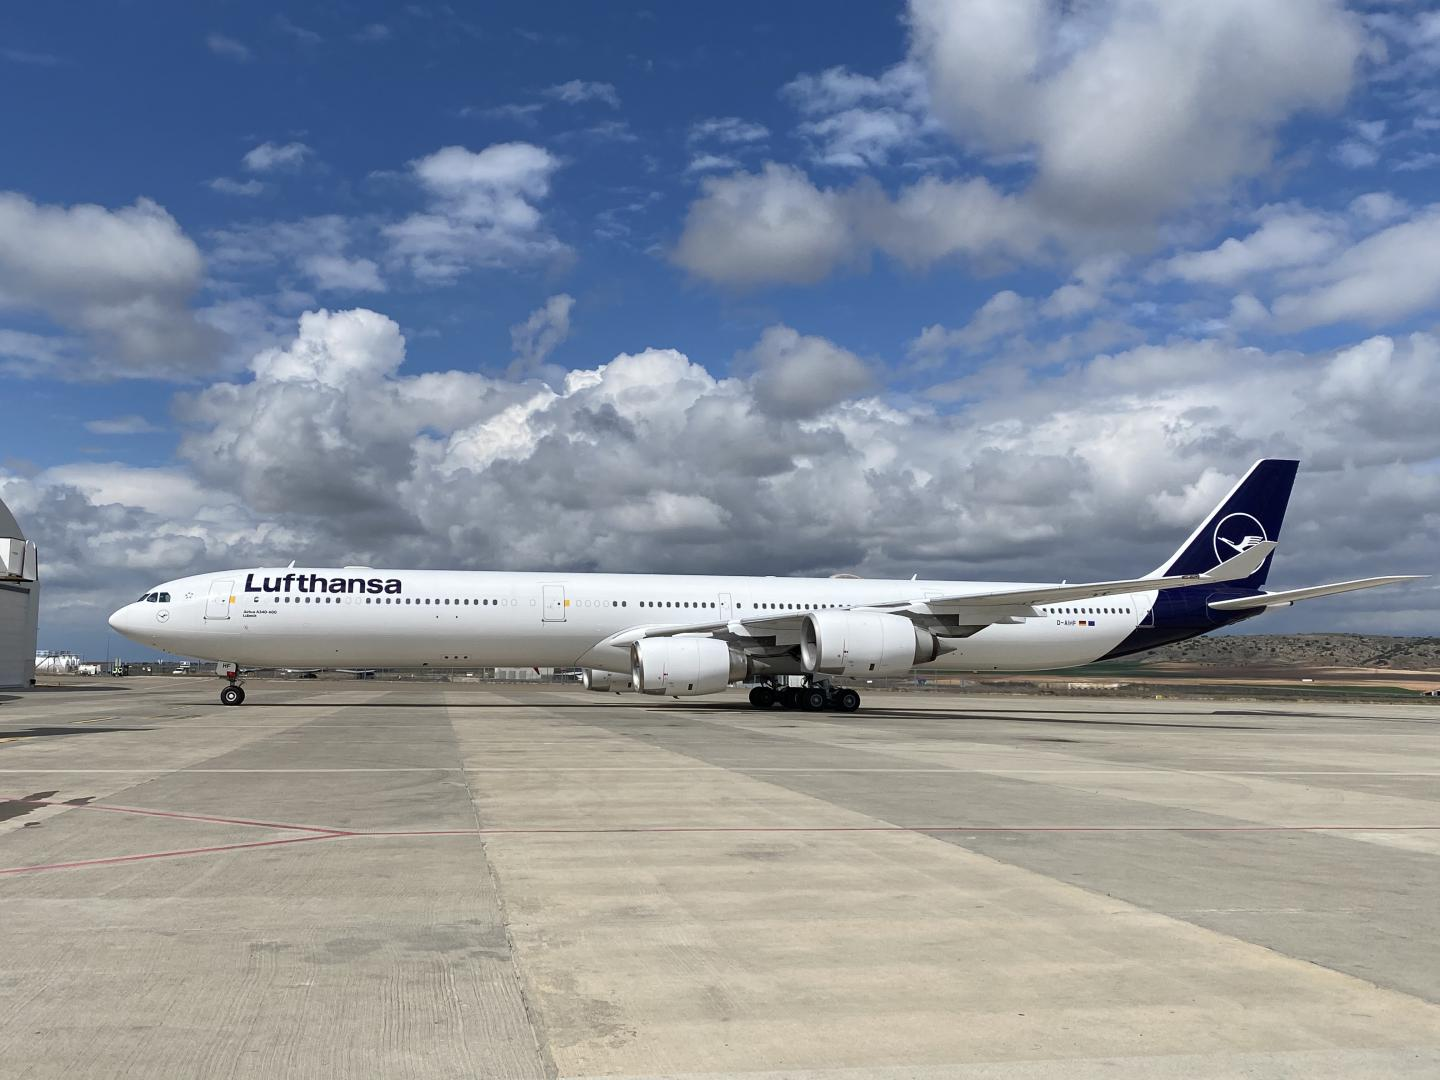 Lufthansa Airbus Official